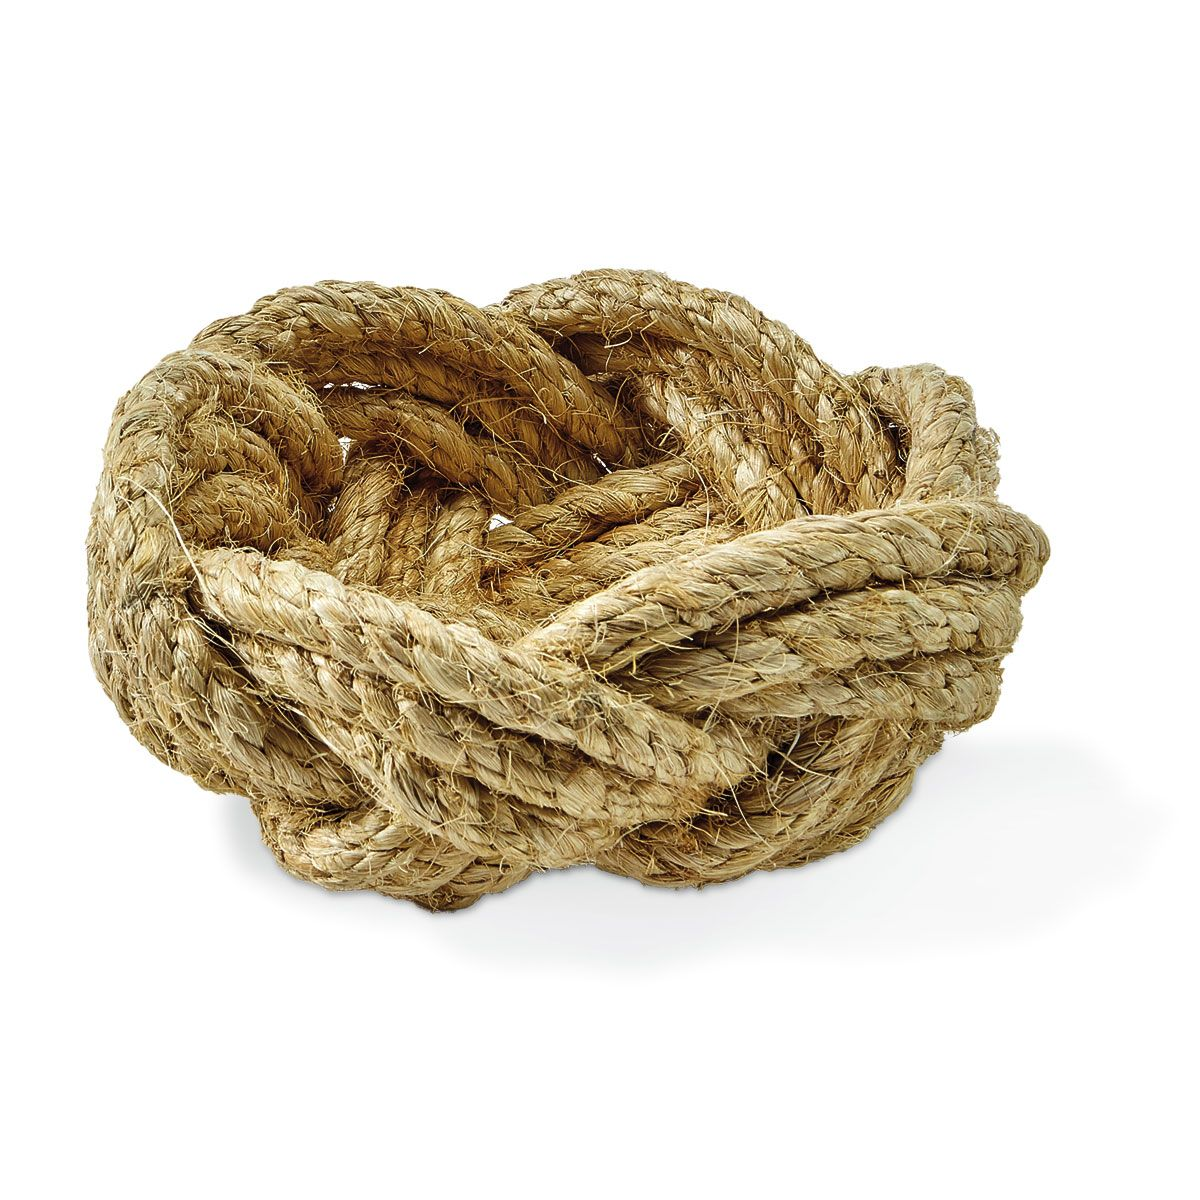 Small Rope Bowl by Two's Company